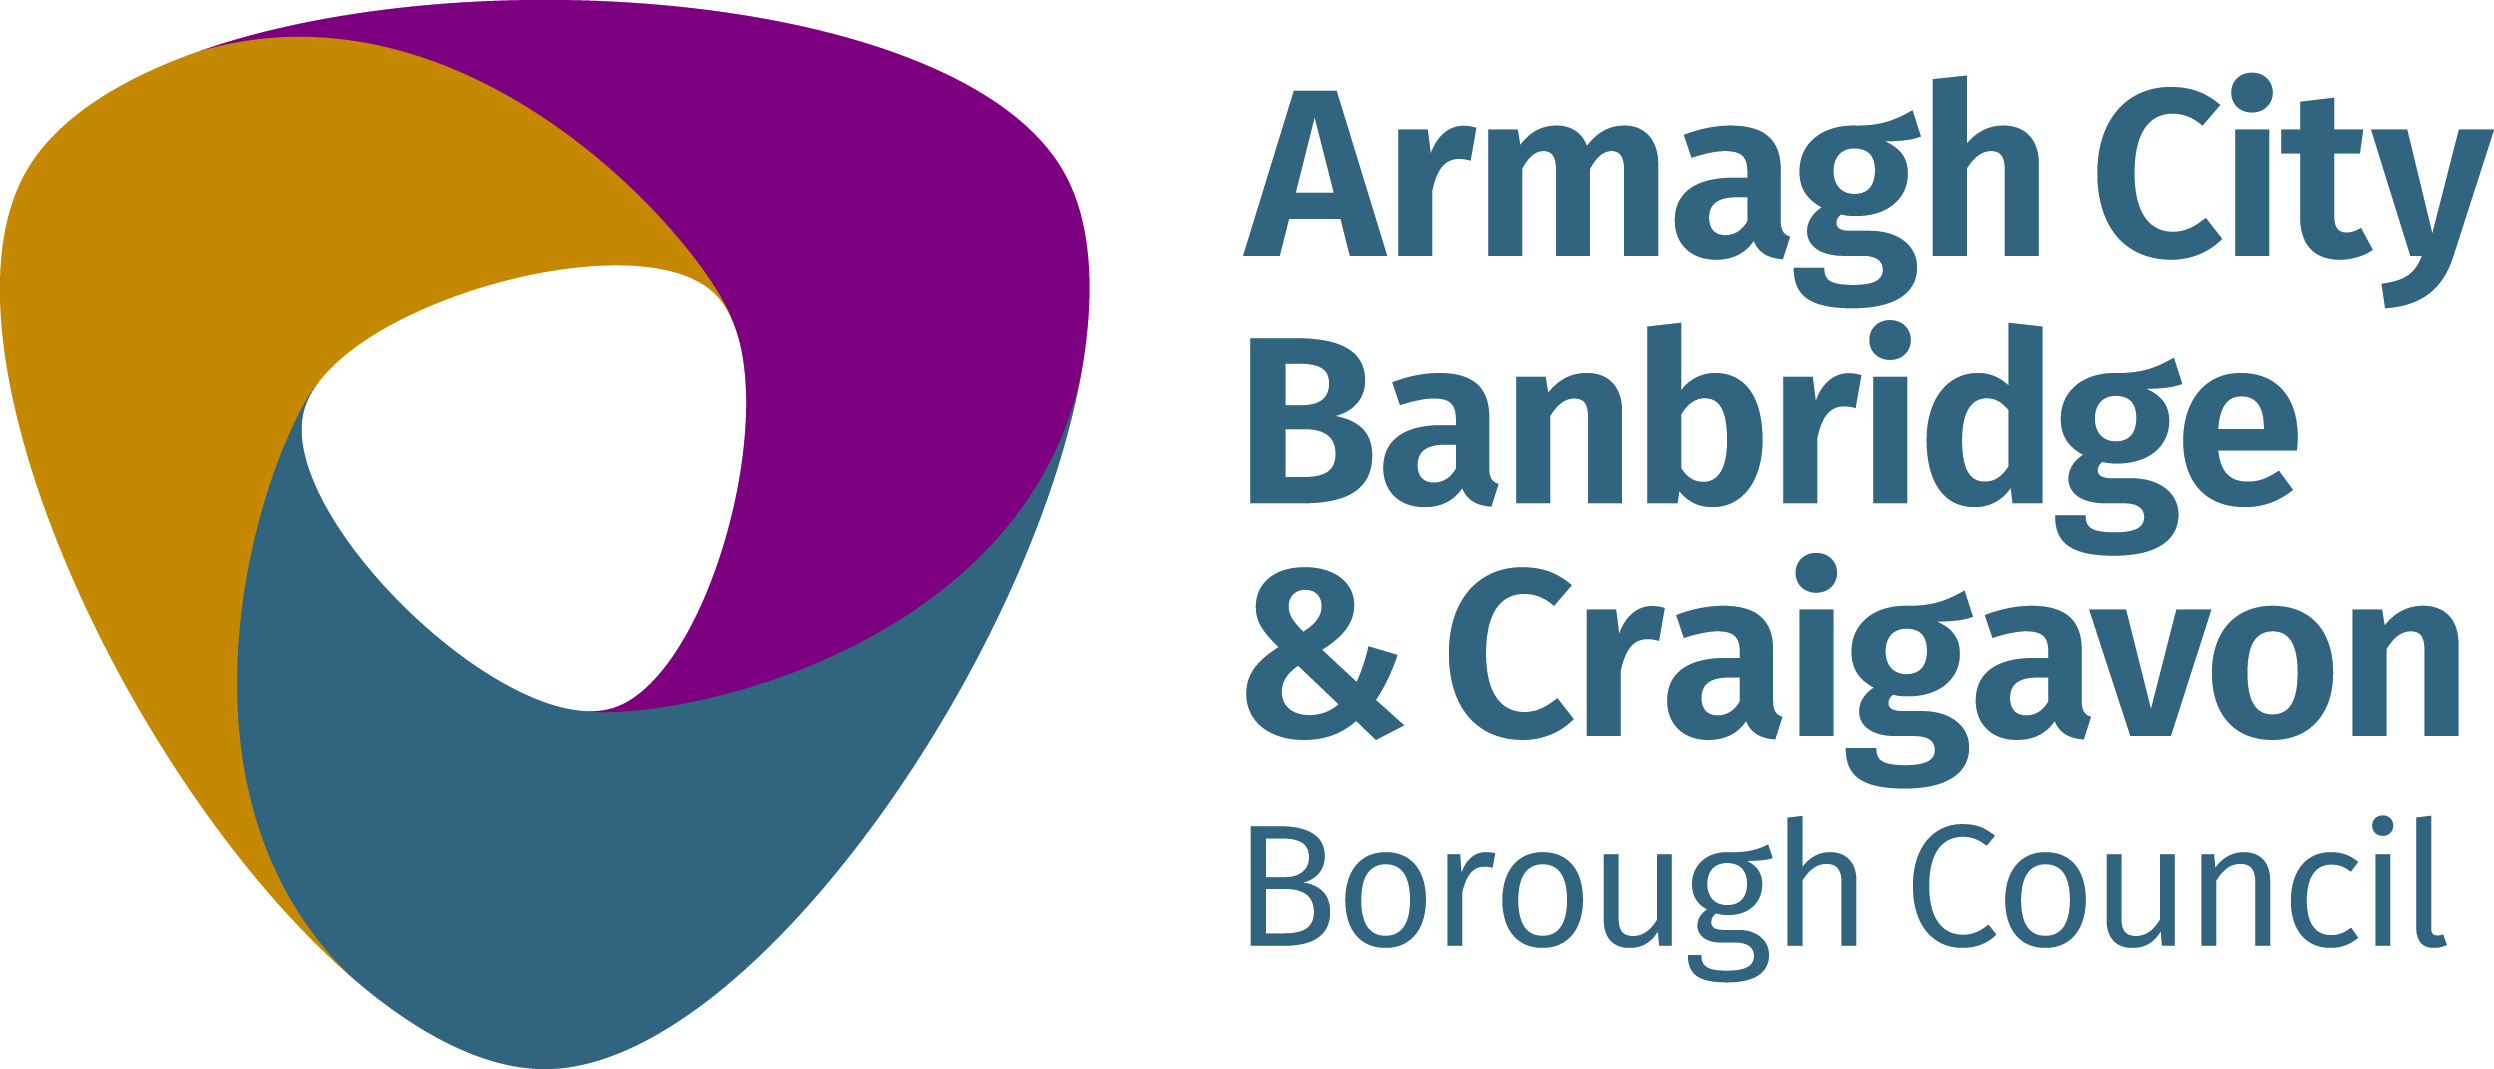 This programme is funded through Armagh City, Banbridge & Craigavon Borough Council